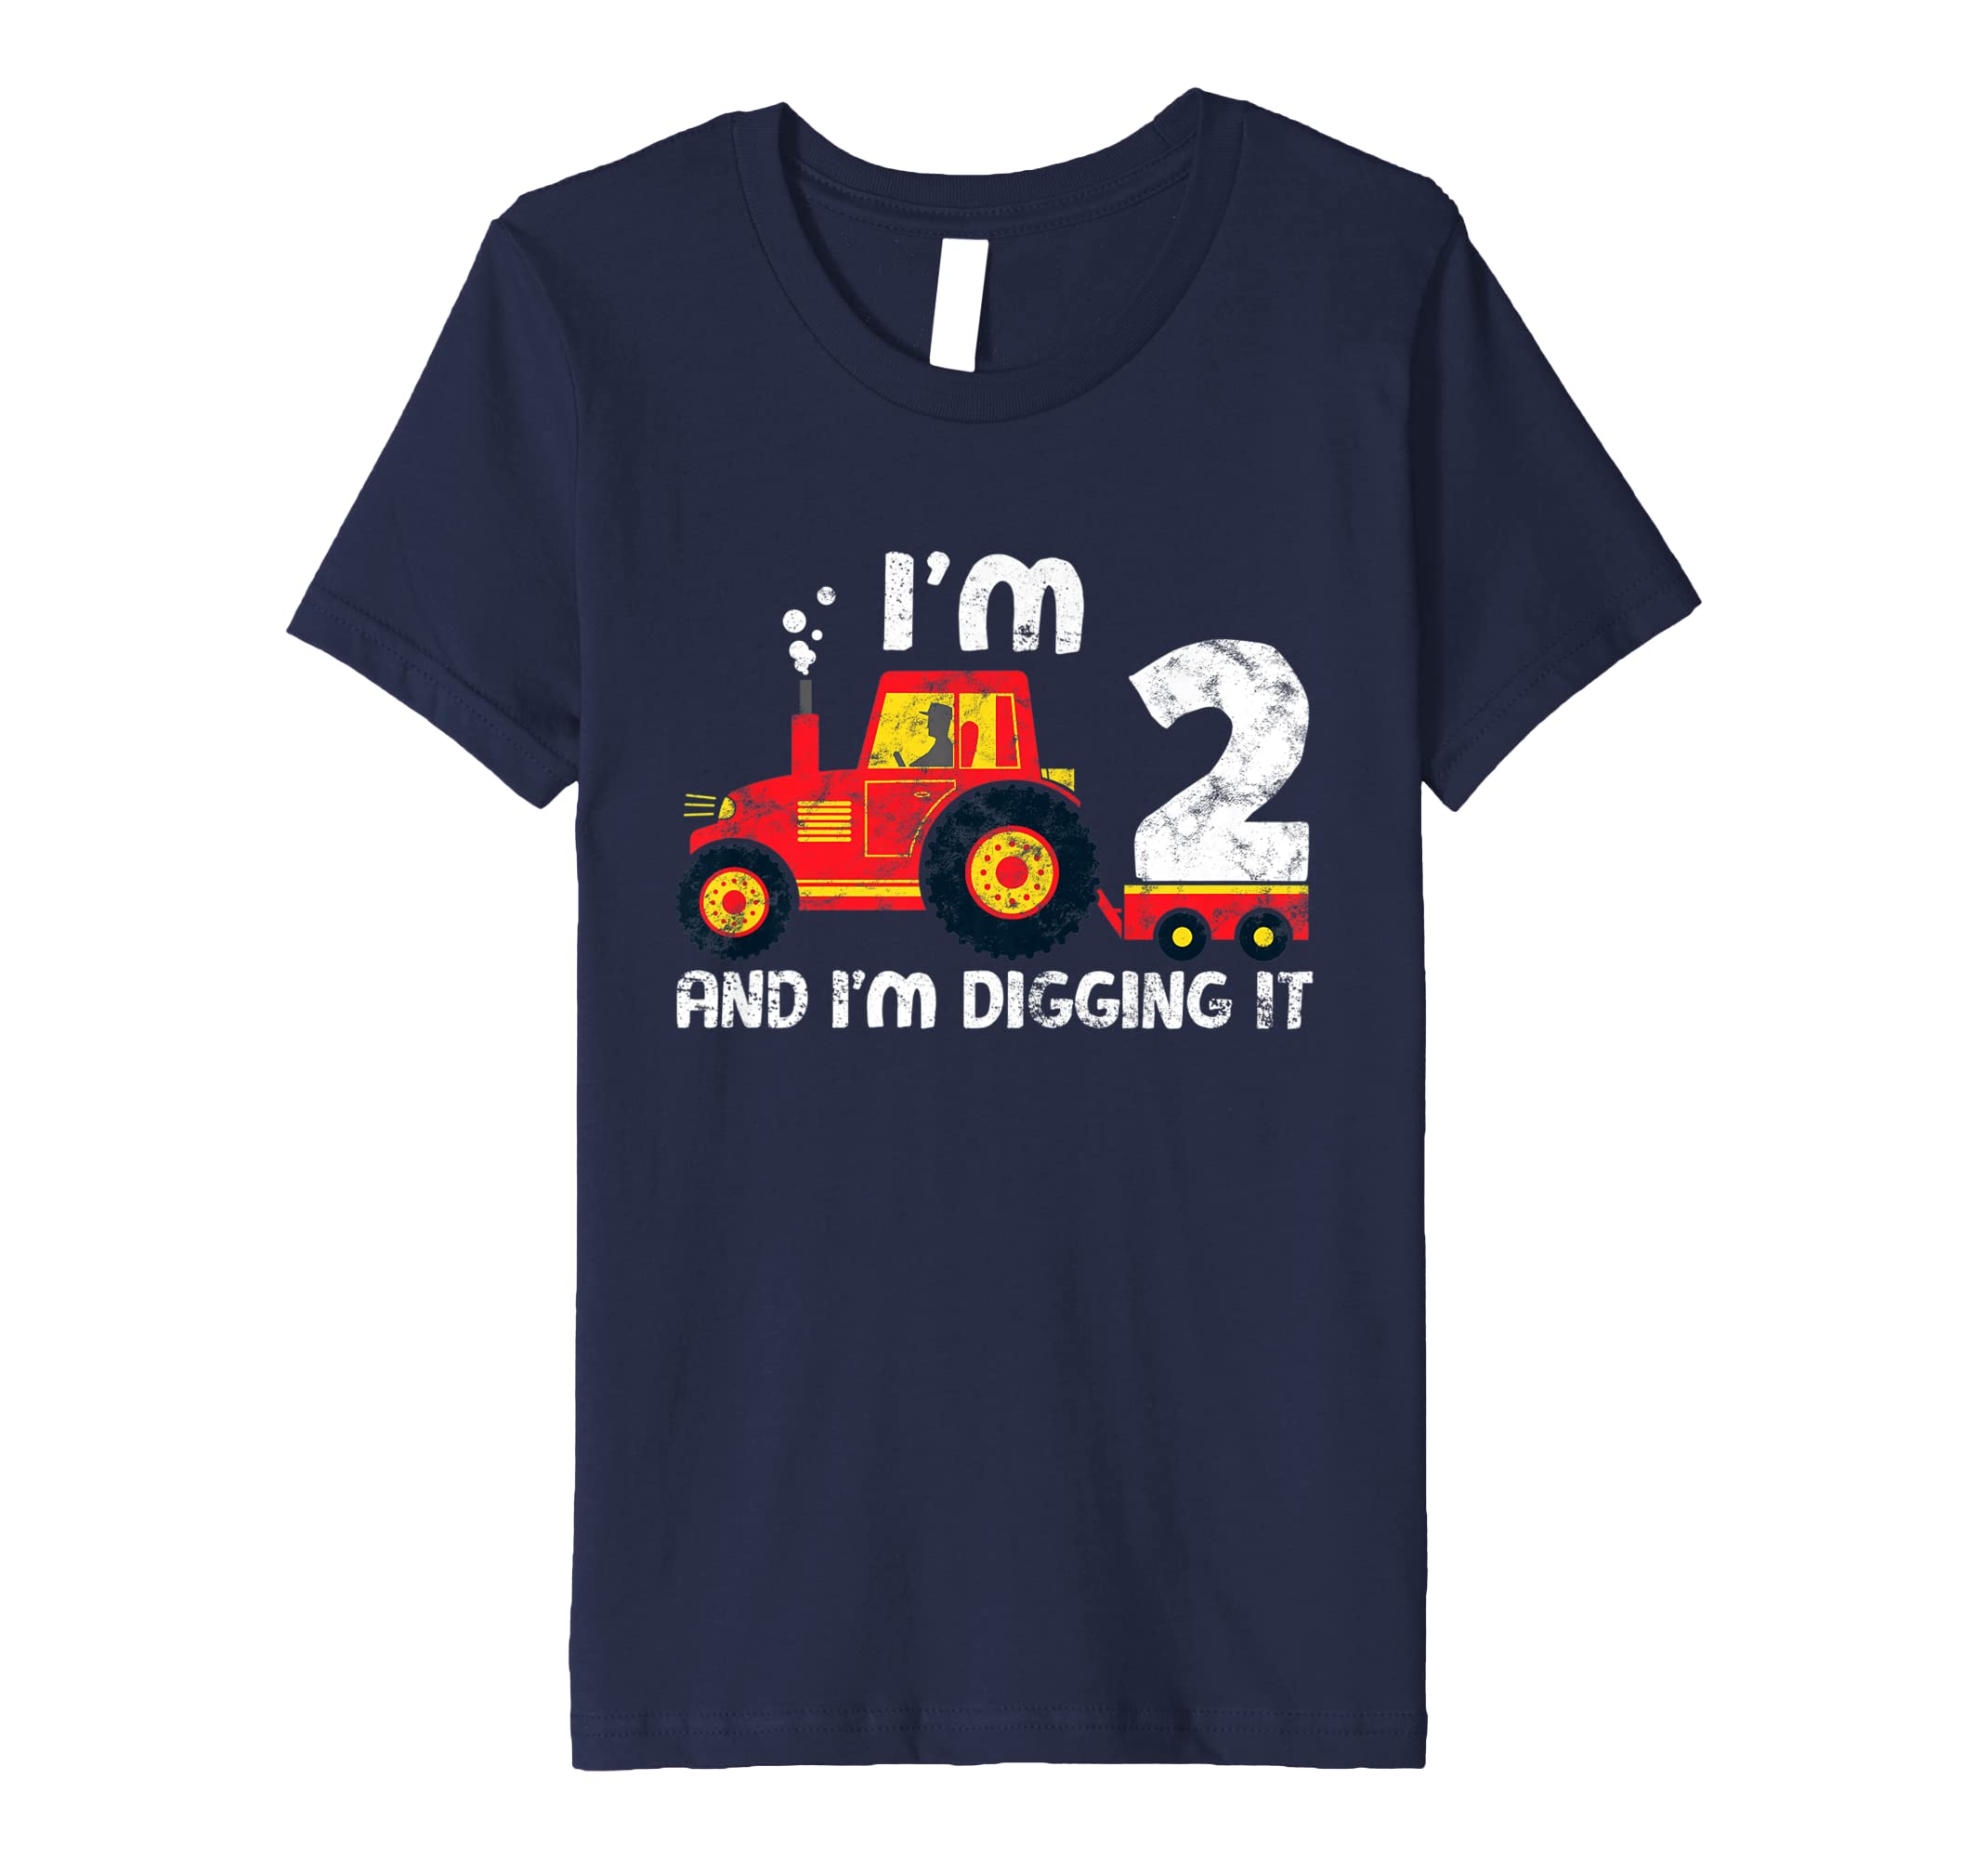 Youth Cute 2nd Birthday Boy Tractor Farmer Shirt Kids 2 Year Old Amazoncouk Clothing